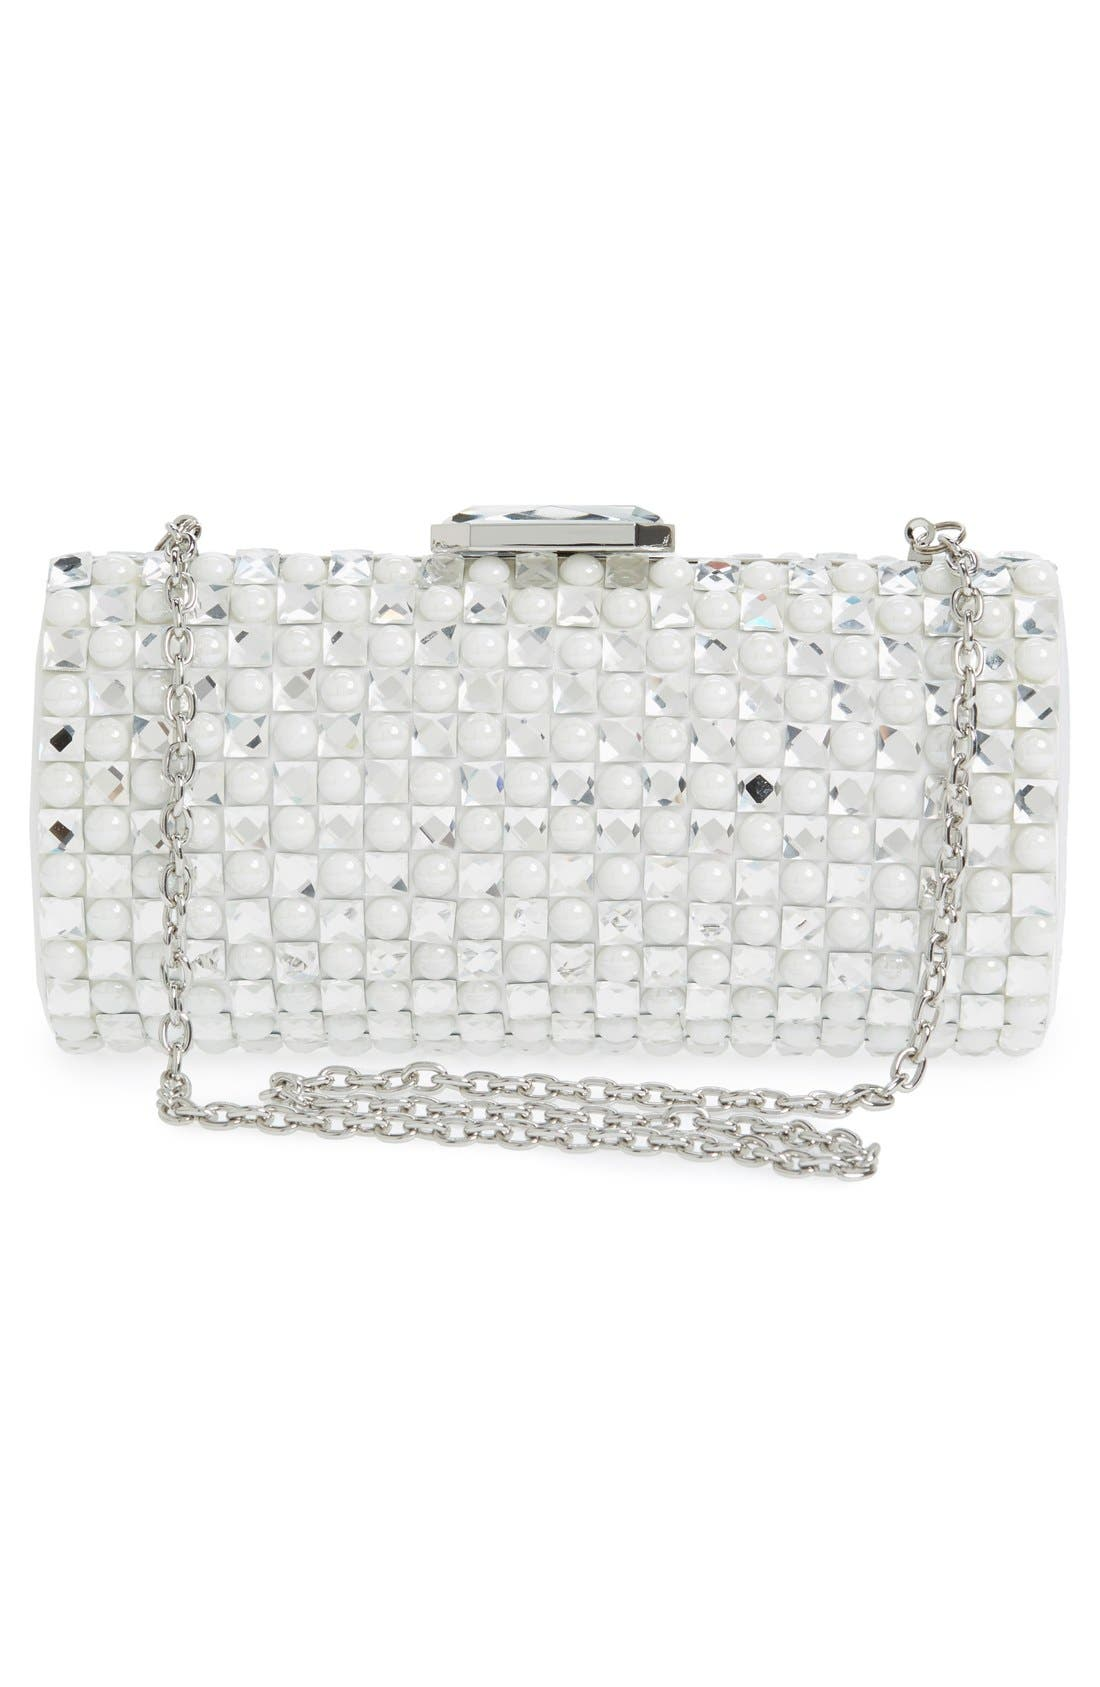 Crystal Clutch,                             Alternate thumbnail 3, color,                             Silver/White